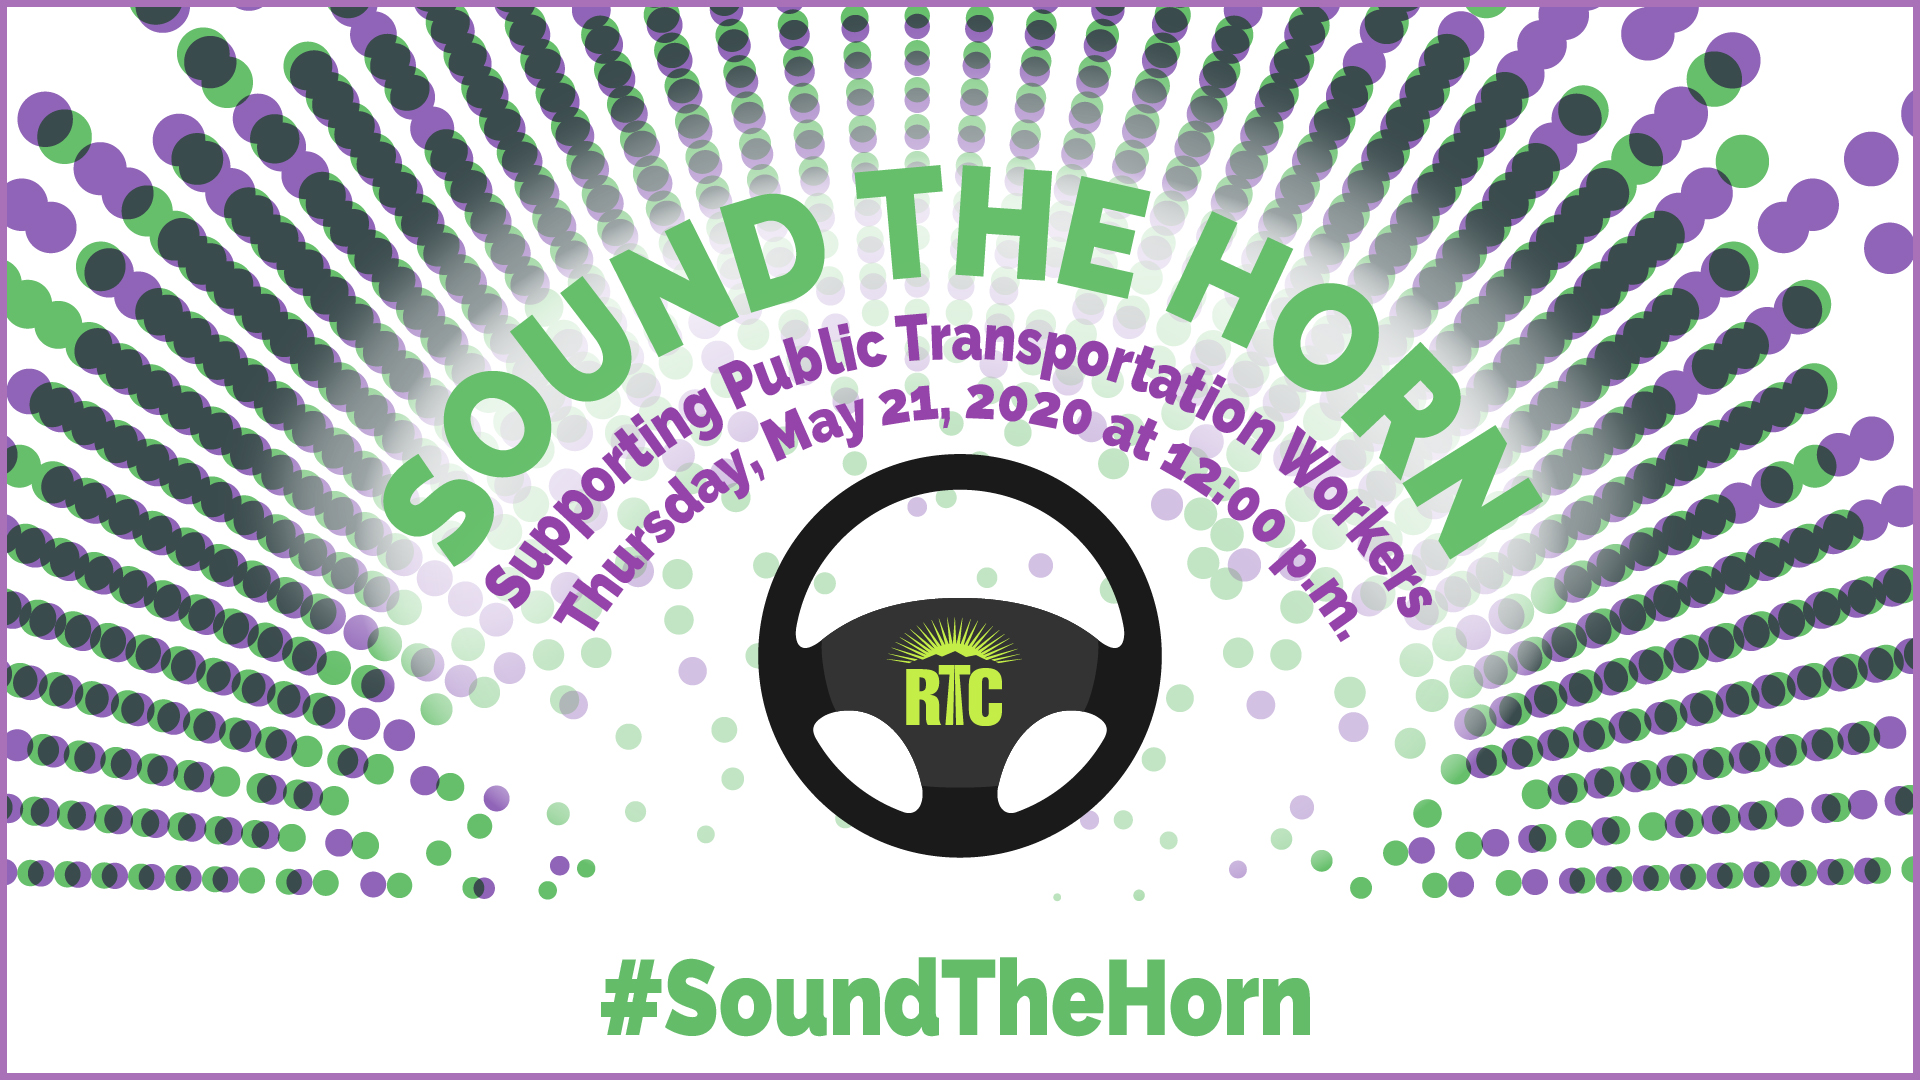 #SoundTheHorn success prompts RTC to get loud and proud again